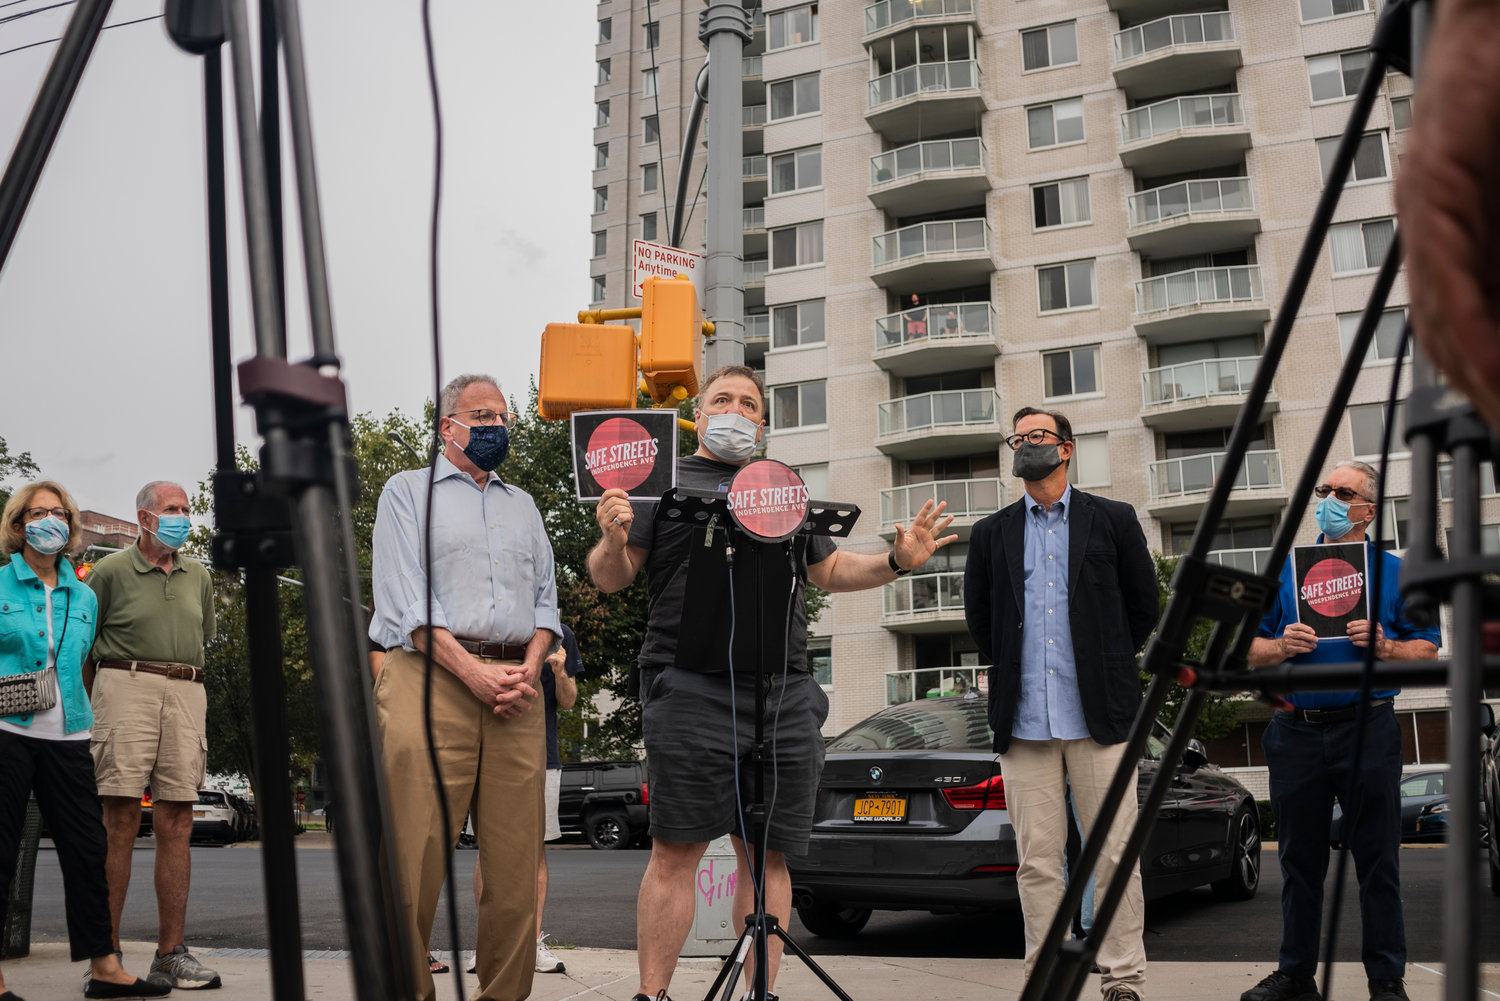 Assemblyman Jeff Dinowitz and Councilman Andrew Cohen were among those taking part in a safe streets' rally last week, where concerned neighbors expressed individual grievances bout nightly drag racers along Independence Avenue. While drag racing has been an issue in the community for several years, it's resurged over the past few months.